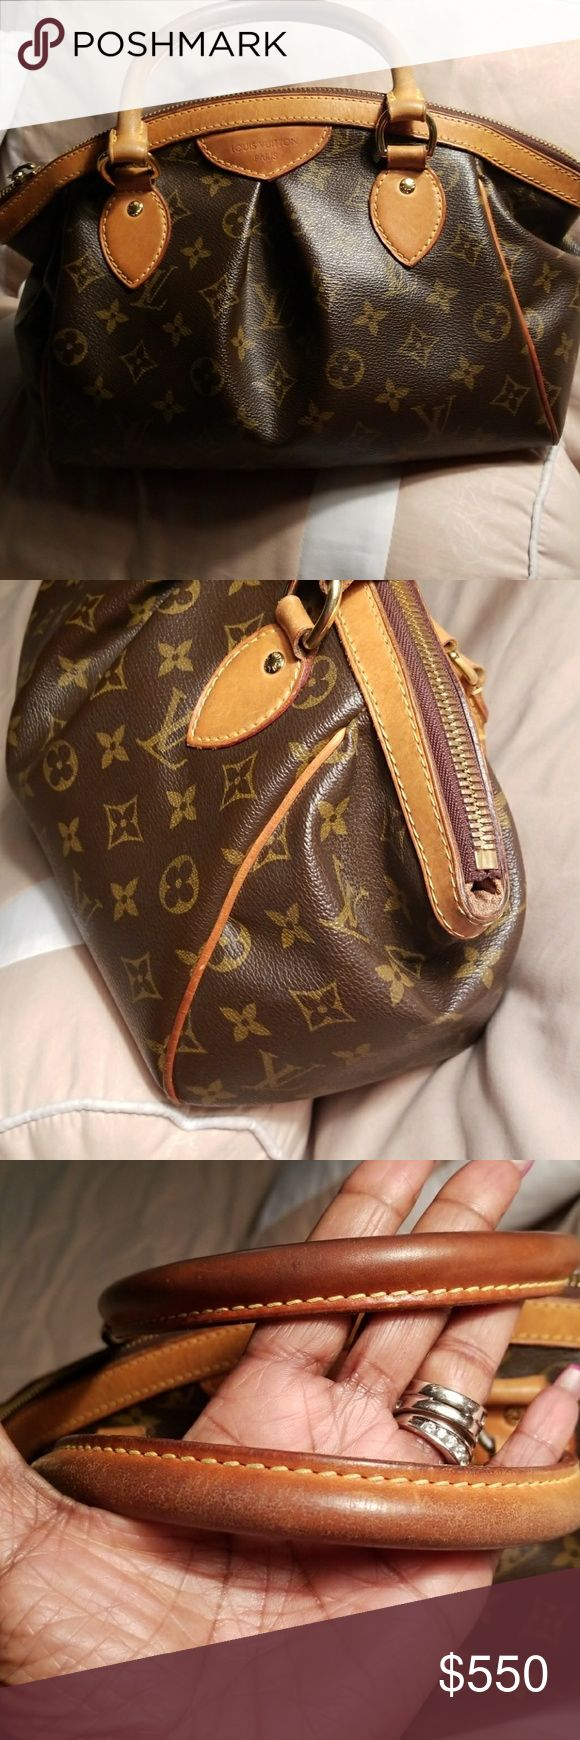 Pm trivilo bag Honey patina in excellent condition,only trading for another Louis vuition selective trades only.trade price higher.100%authentic threw posh(tag number is V11028)hard to get picture its in the pocket.this bag is gorgeous($850) Louis Vuitton Bags Satchels